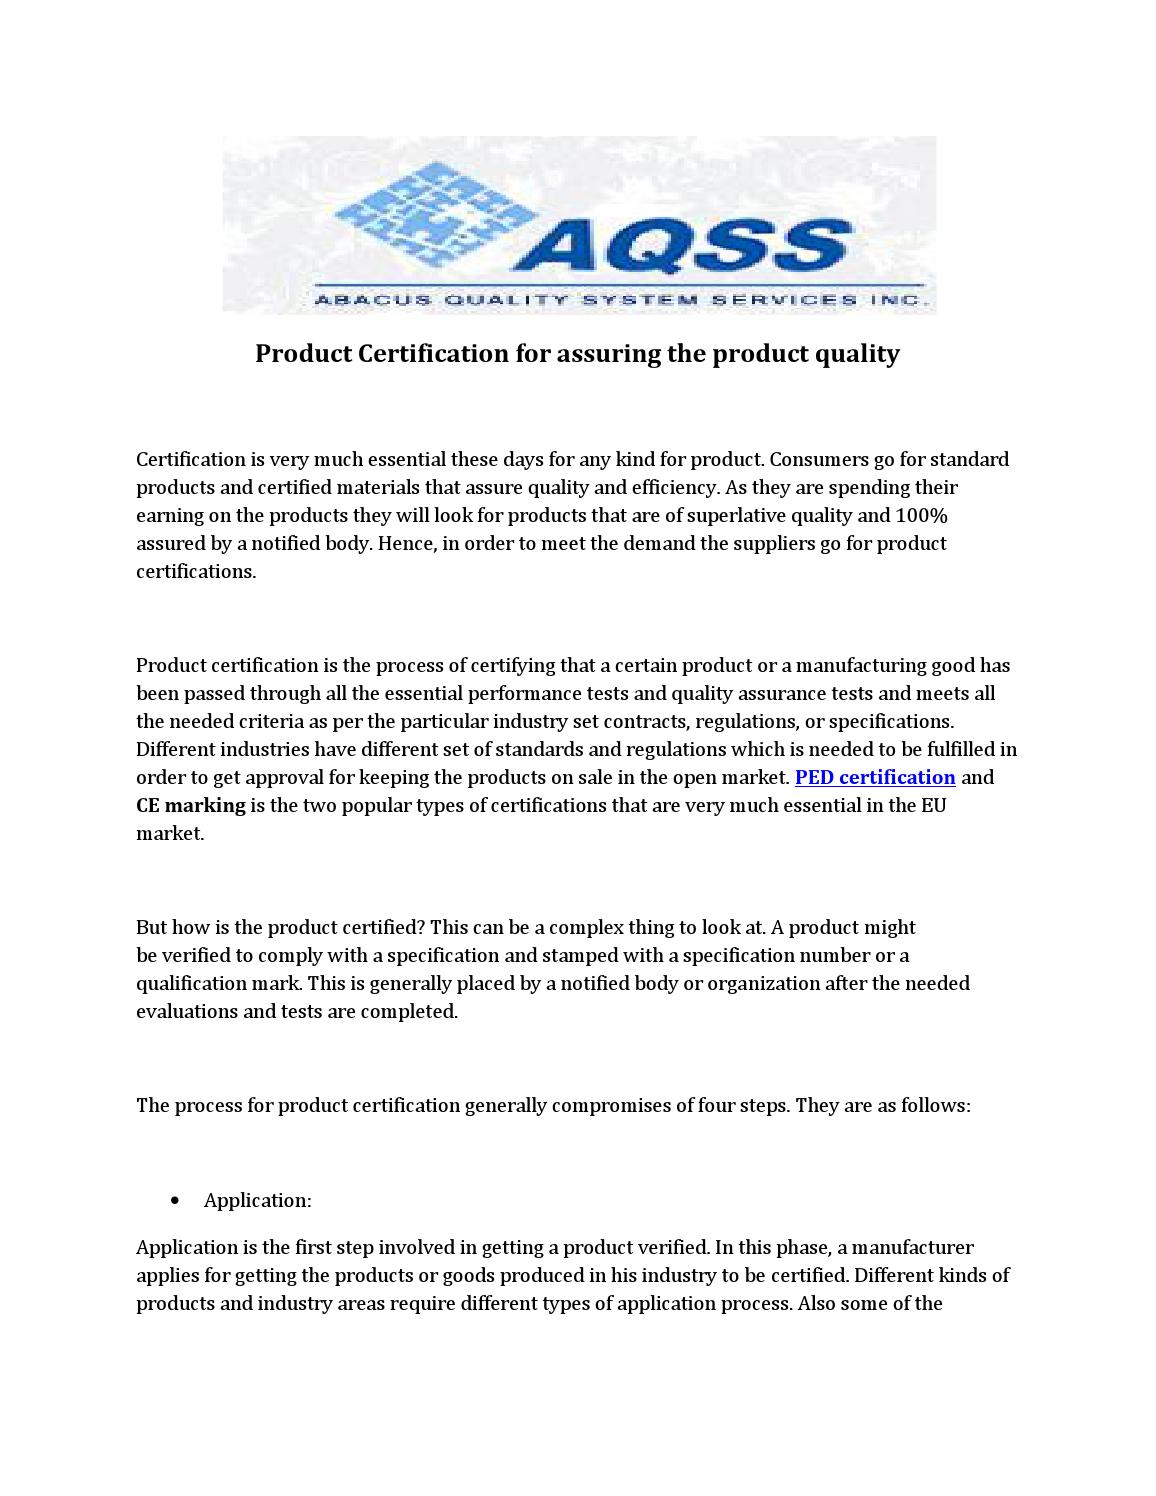 Product Certification For Assuring The Product Quality By Safi Qudsi